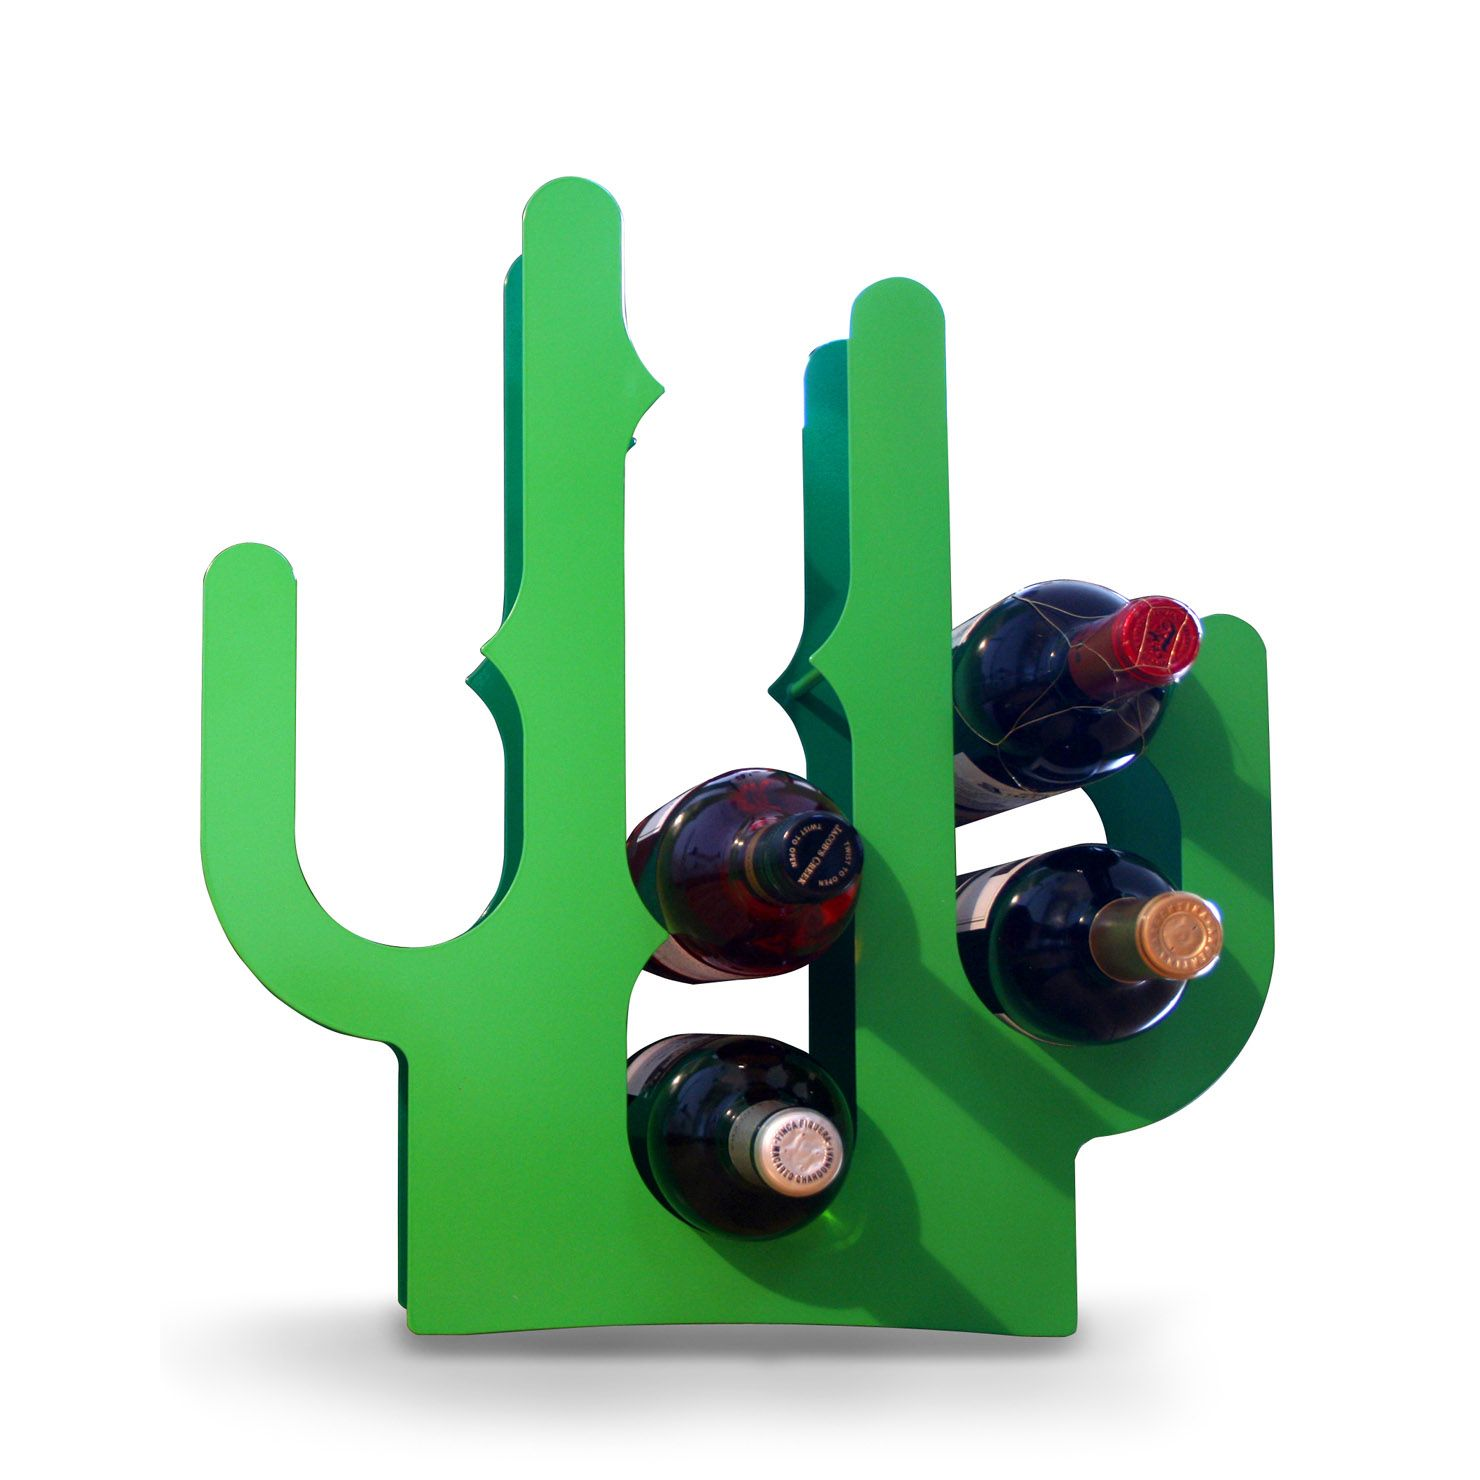 Weinregal Cactus J Me Cactus Wine Rack Time 2 Drink Pinterest Wine Rack Wine